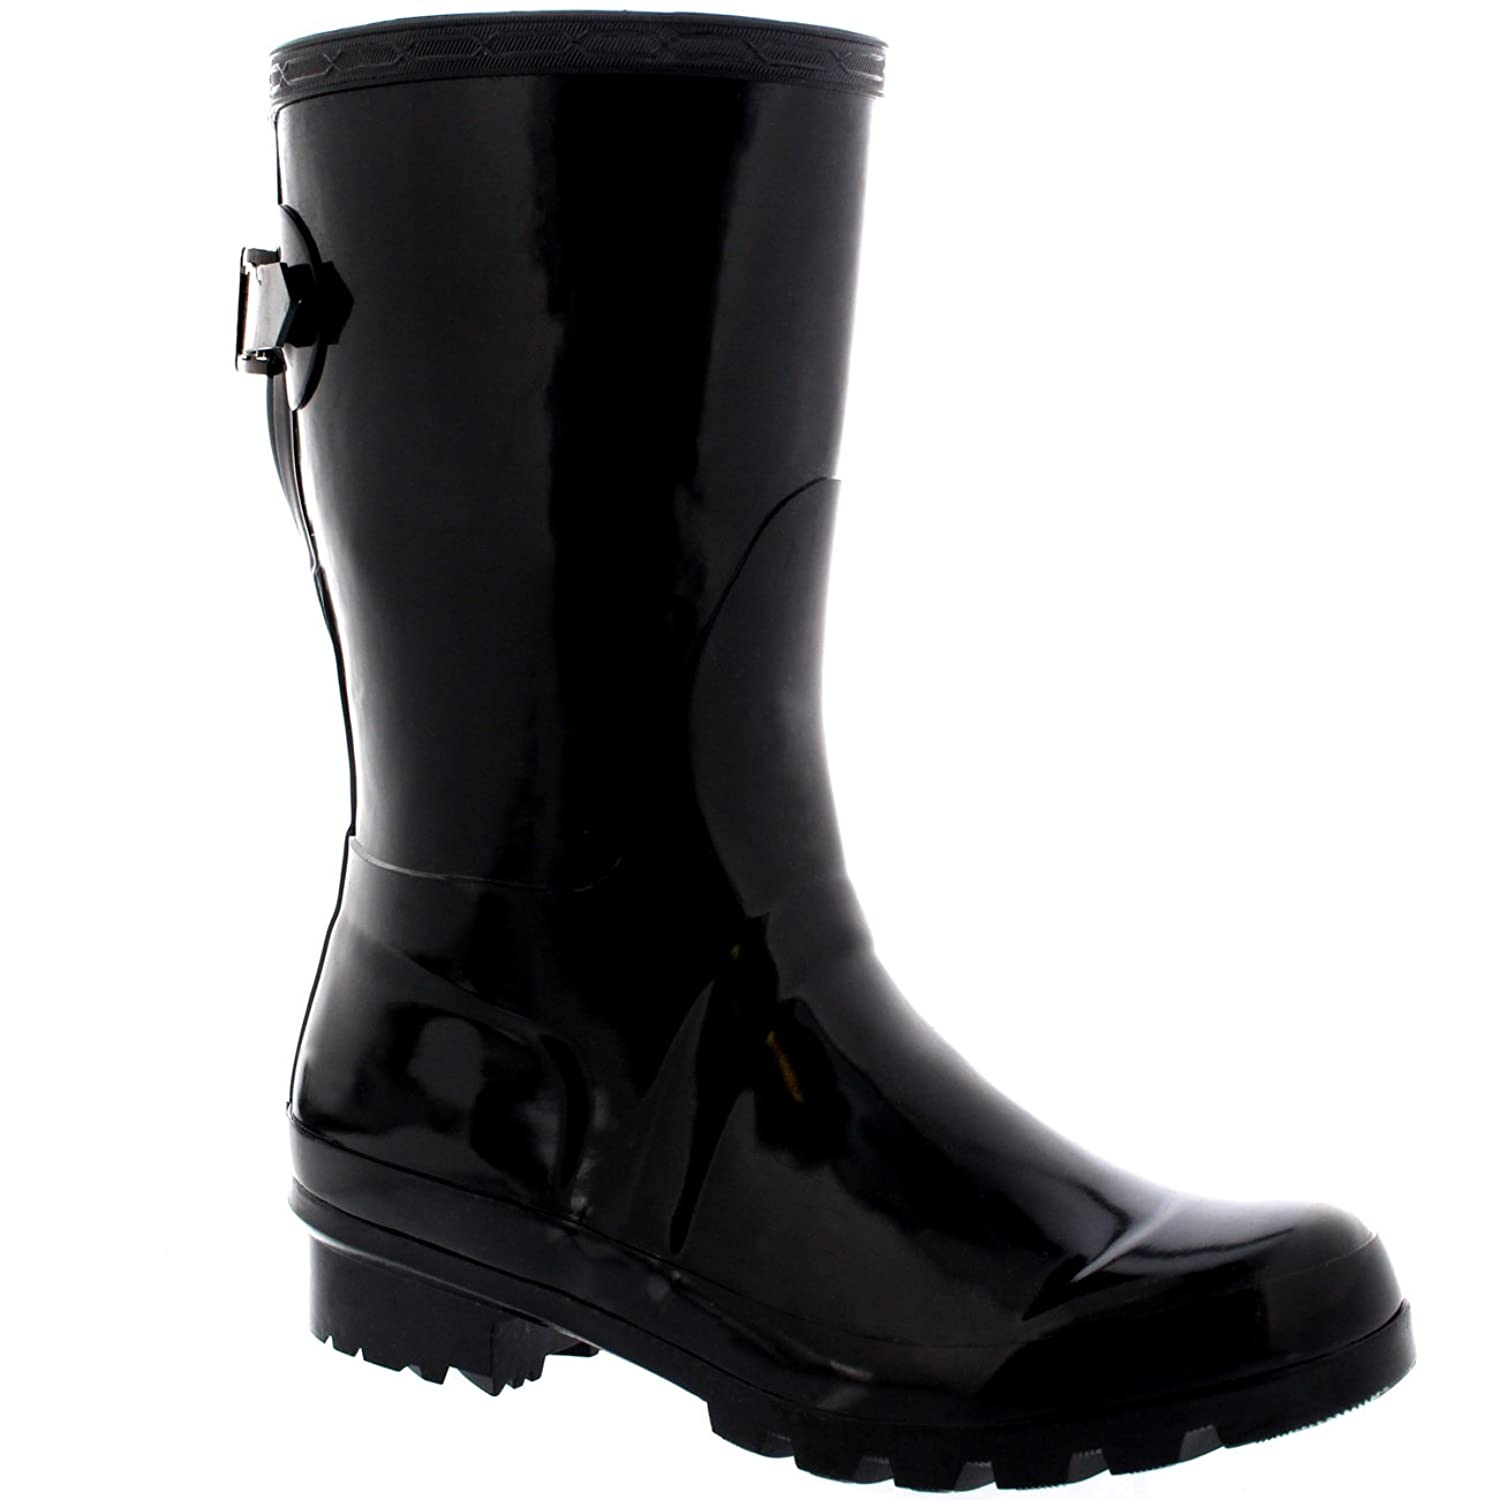 Womens Womens Original Chelsea Rubber Festival Winter Snow Rain Welly Boots For Sale Size 40